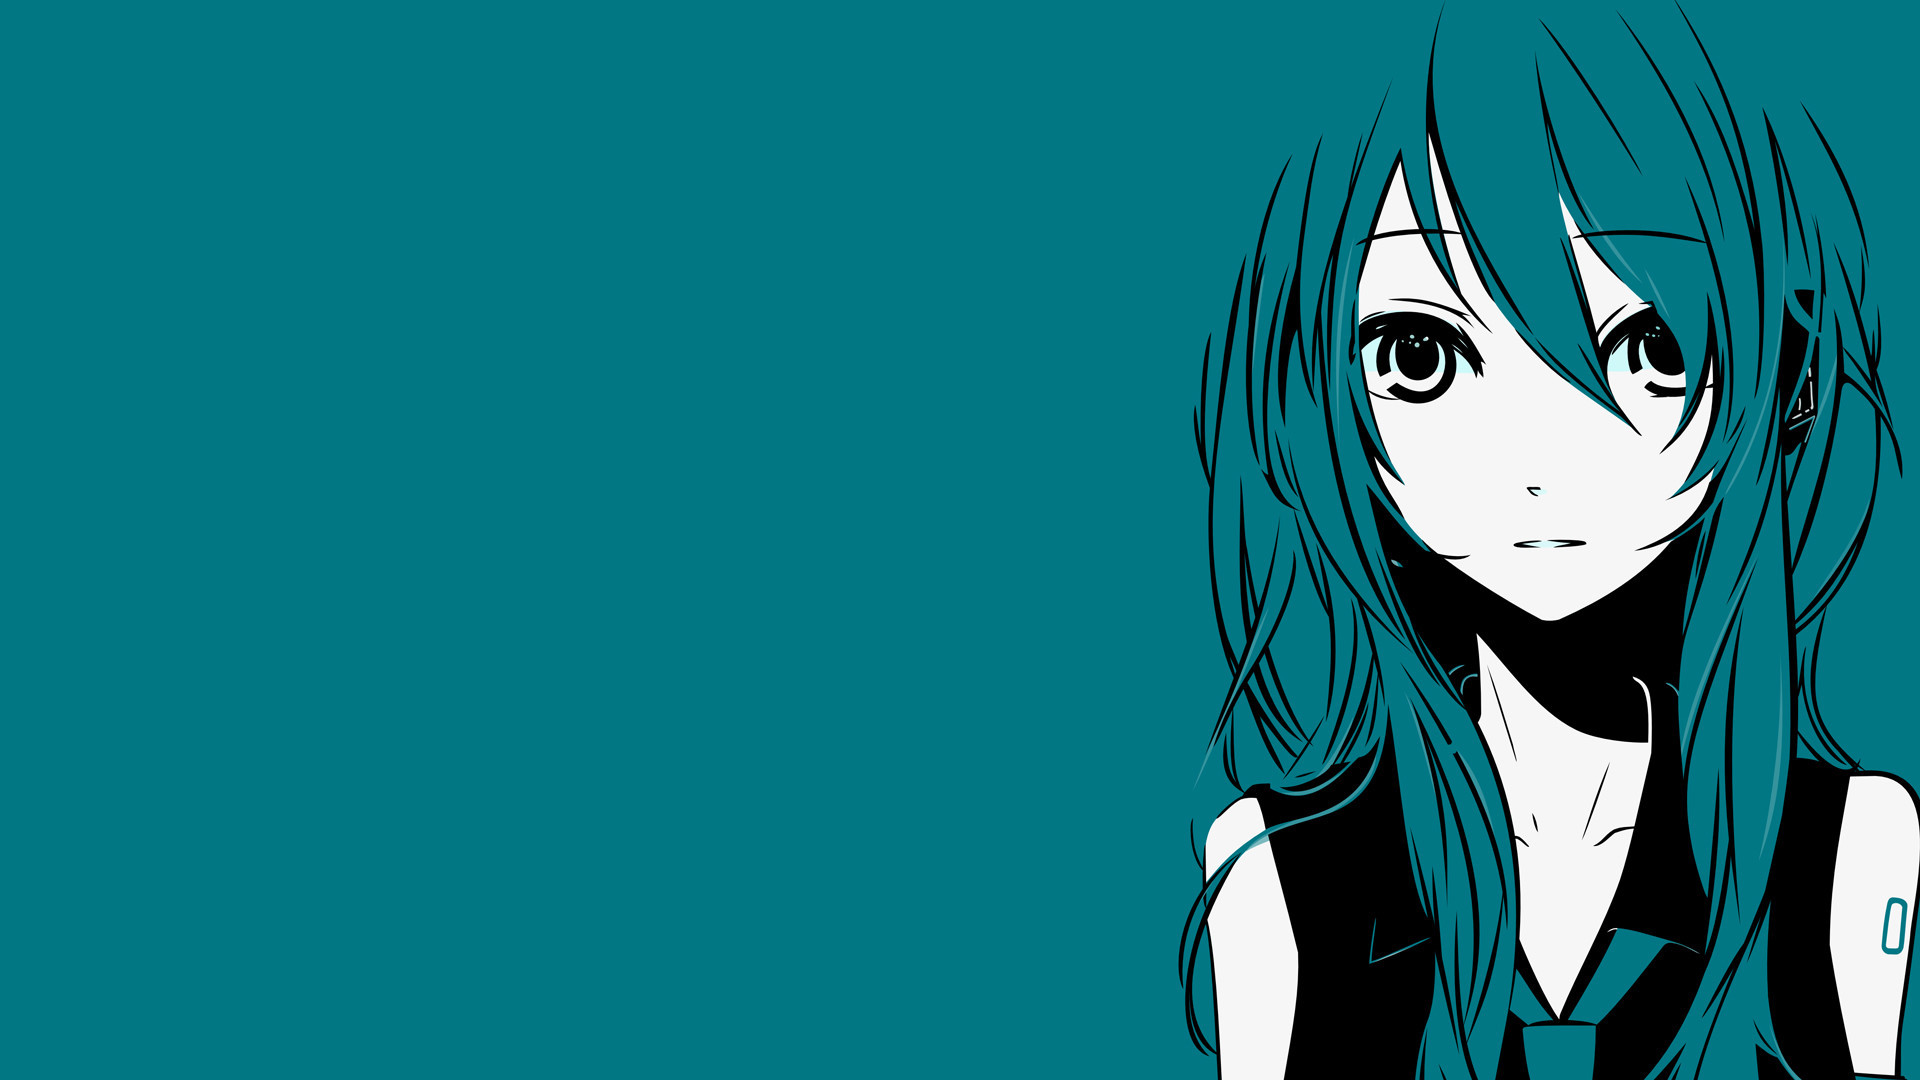 Anime Hd Wallpapers (48 Wallpapers)